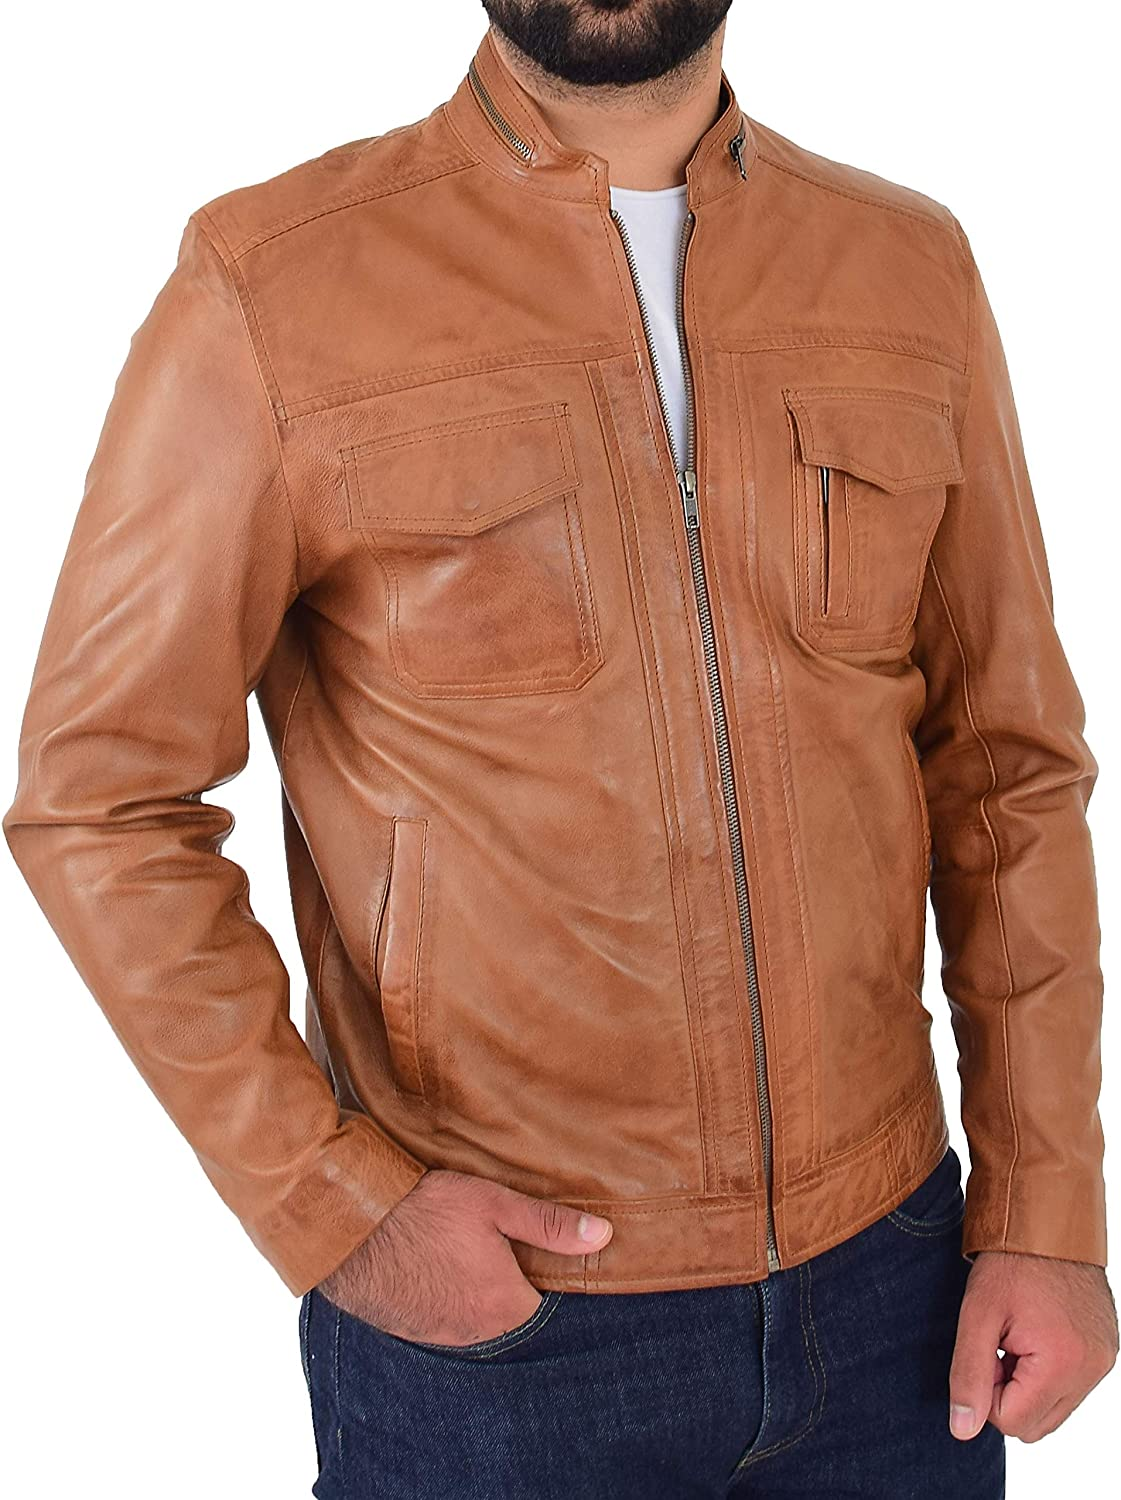 A1 FASHION GOODS Biker Leather Jacket for Mens Cognac Soft Nappa Fitted Standing Collar Zip Fasten Tats